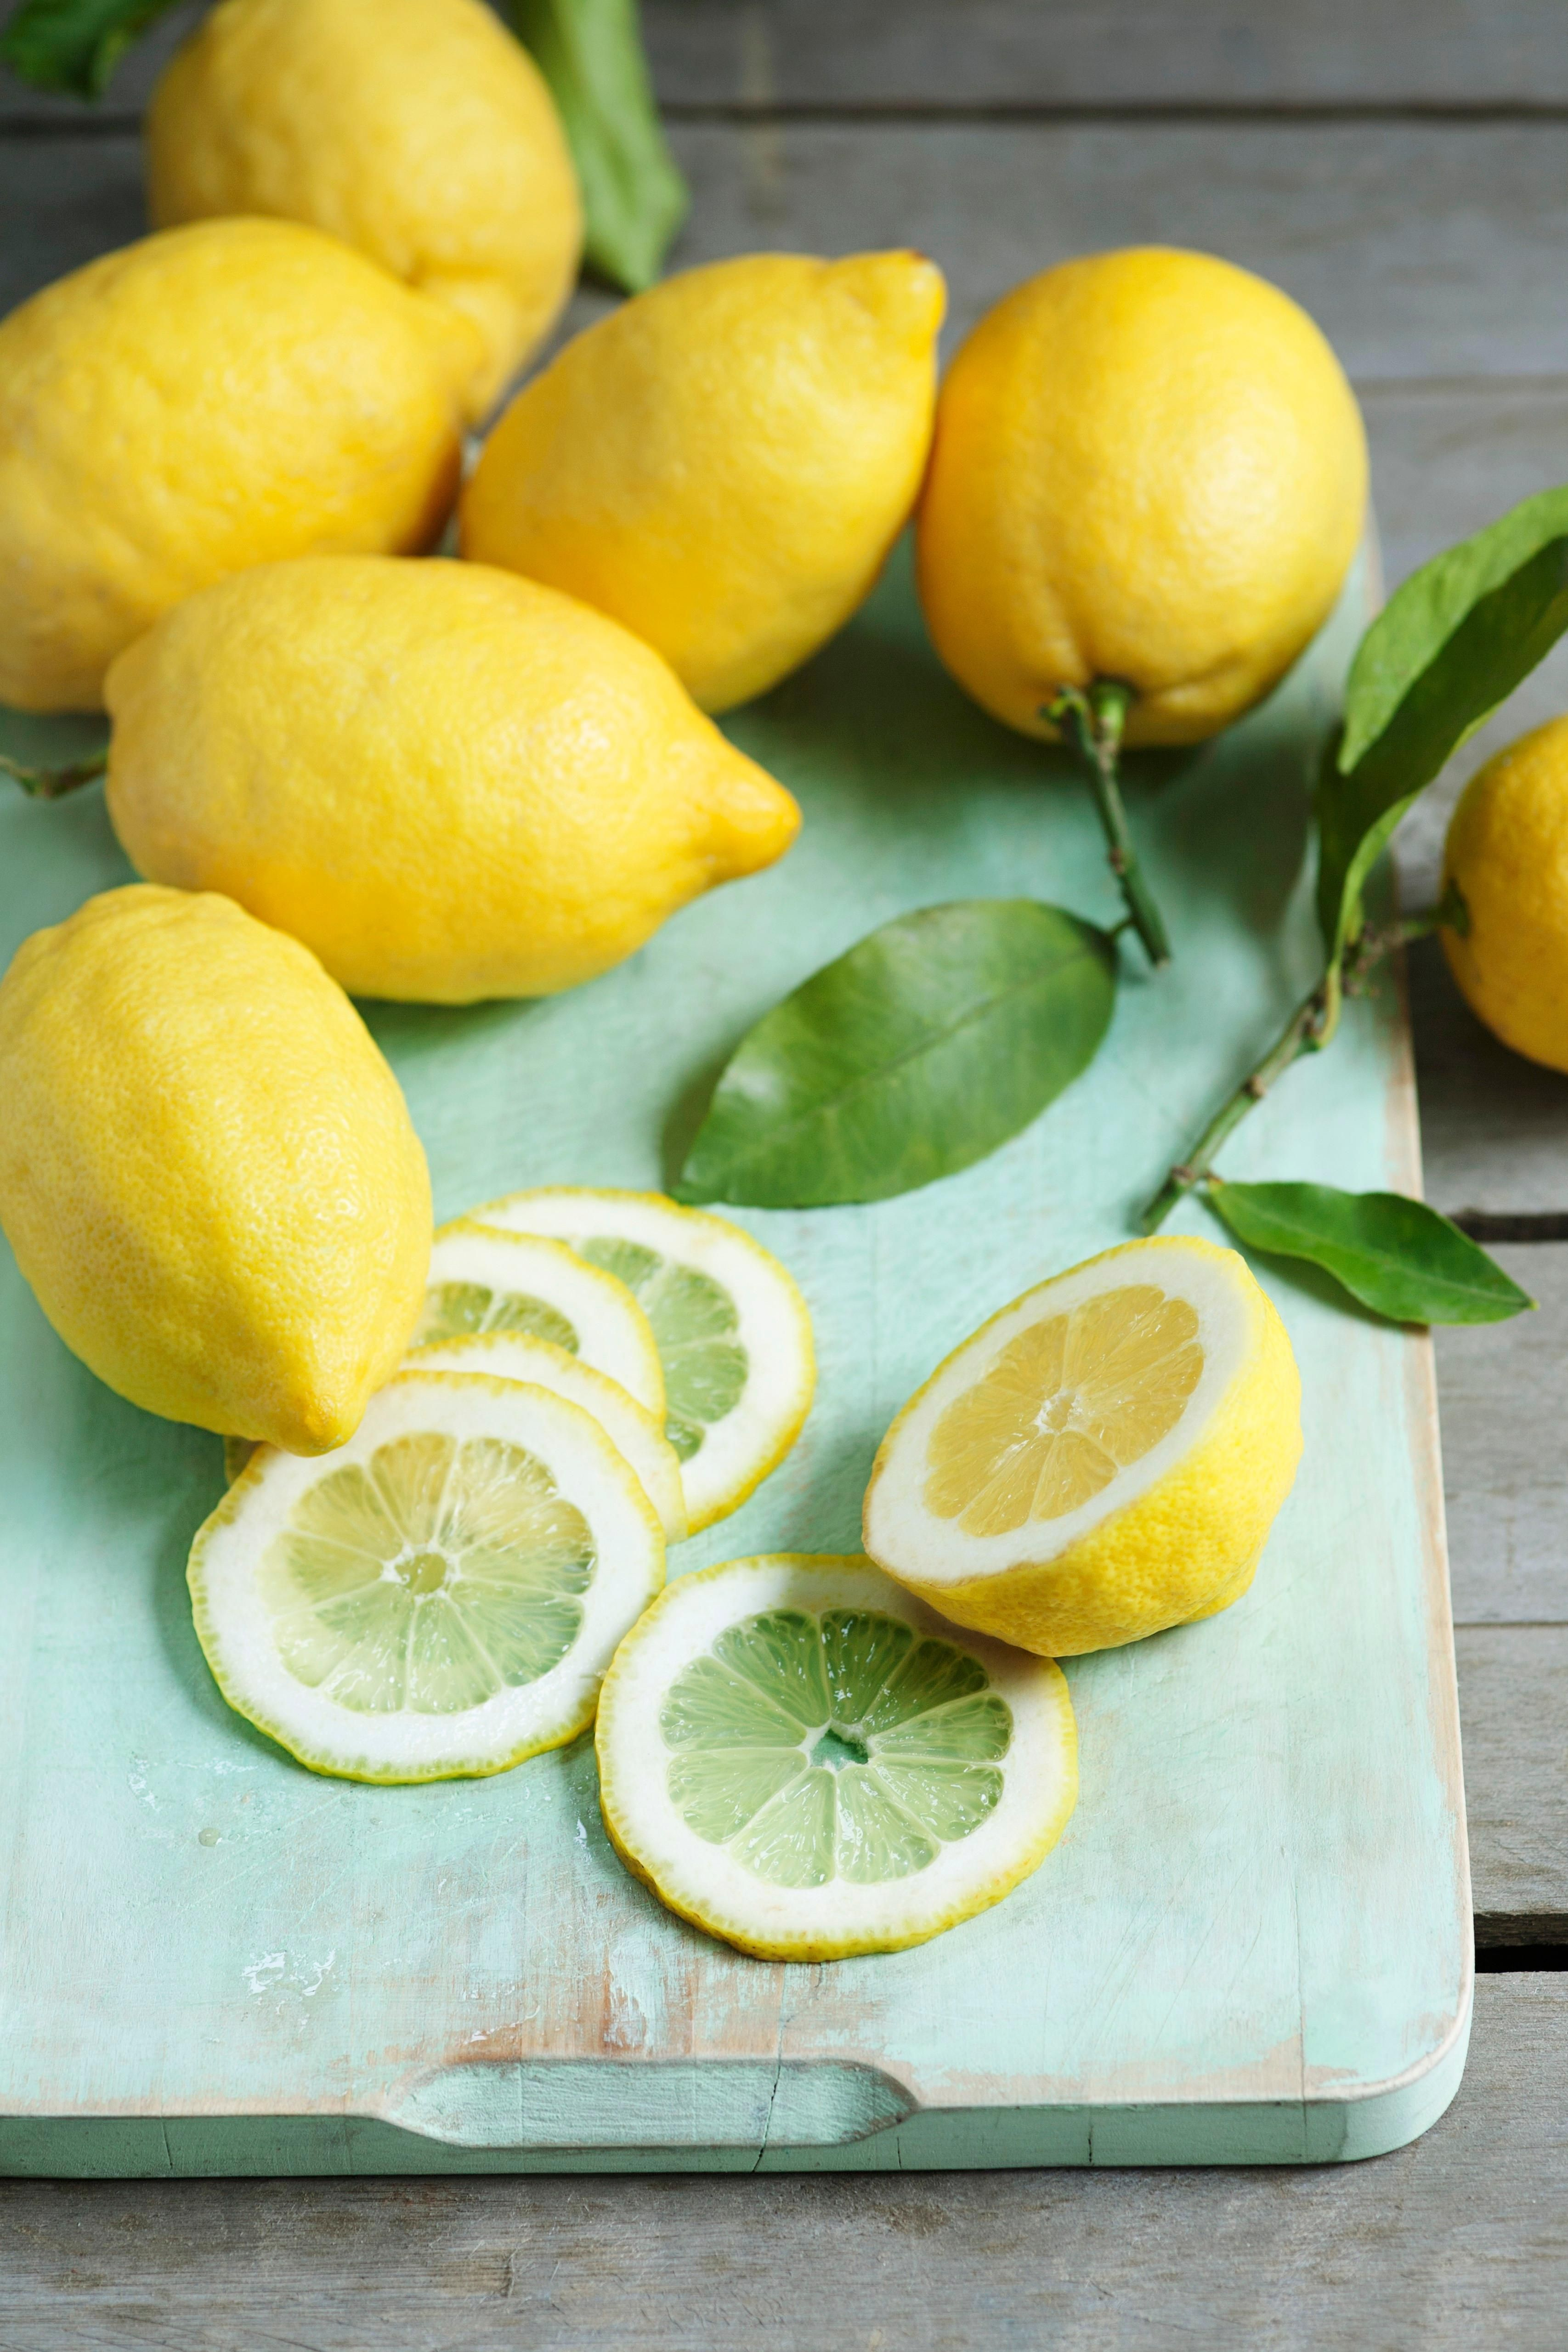 10 Surprising and Simple Ways to Use Lemons When You Cook